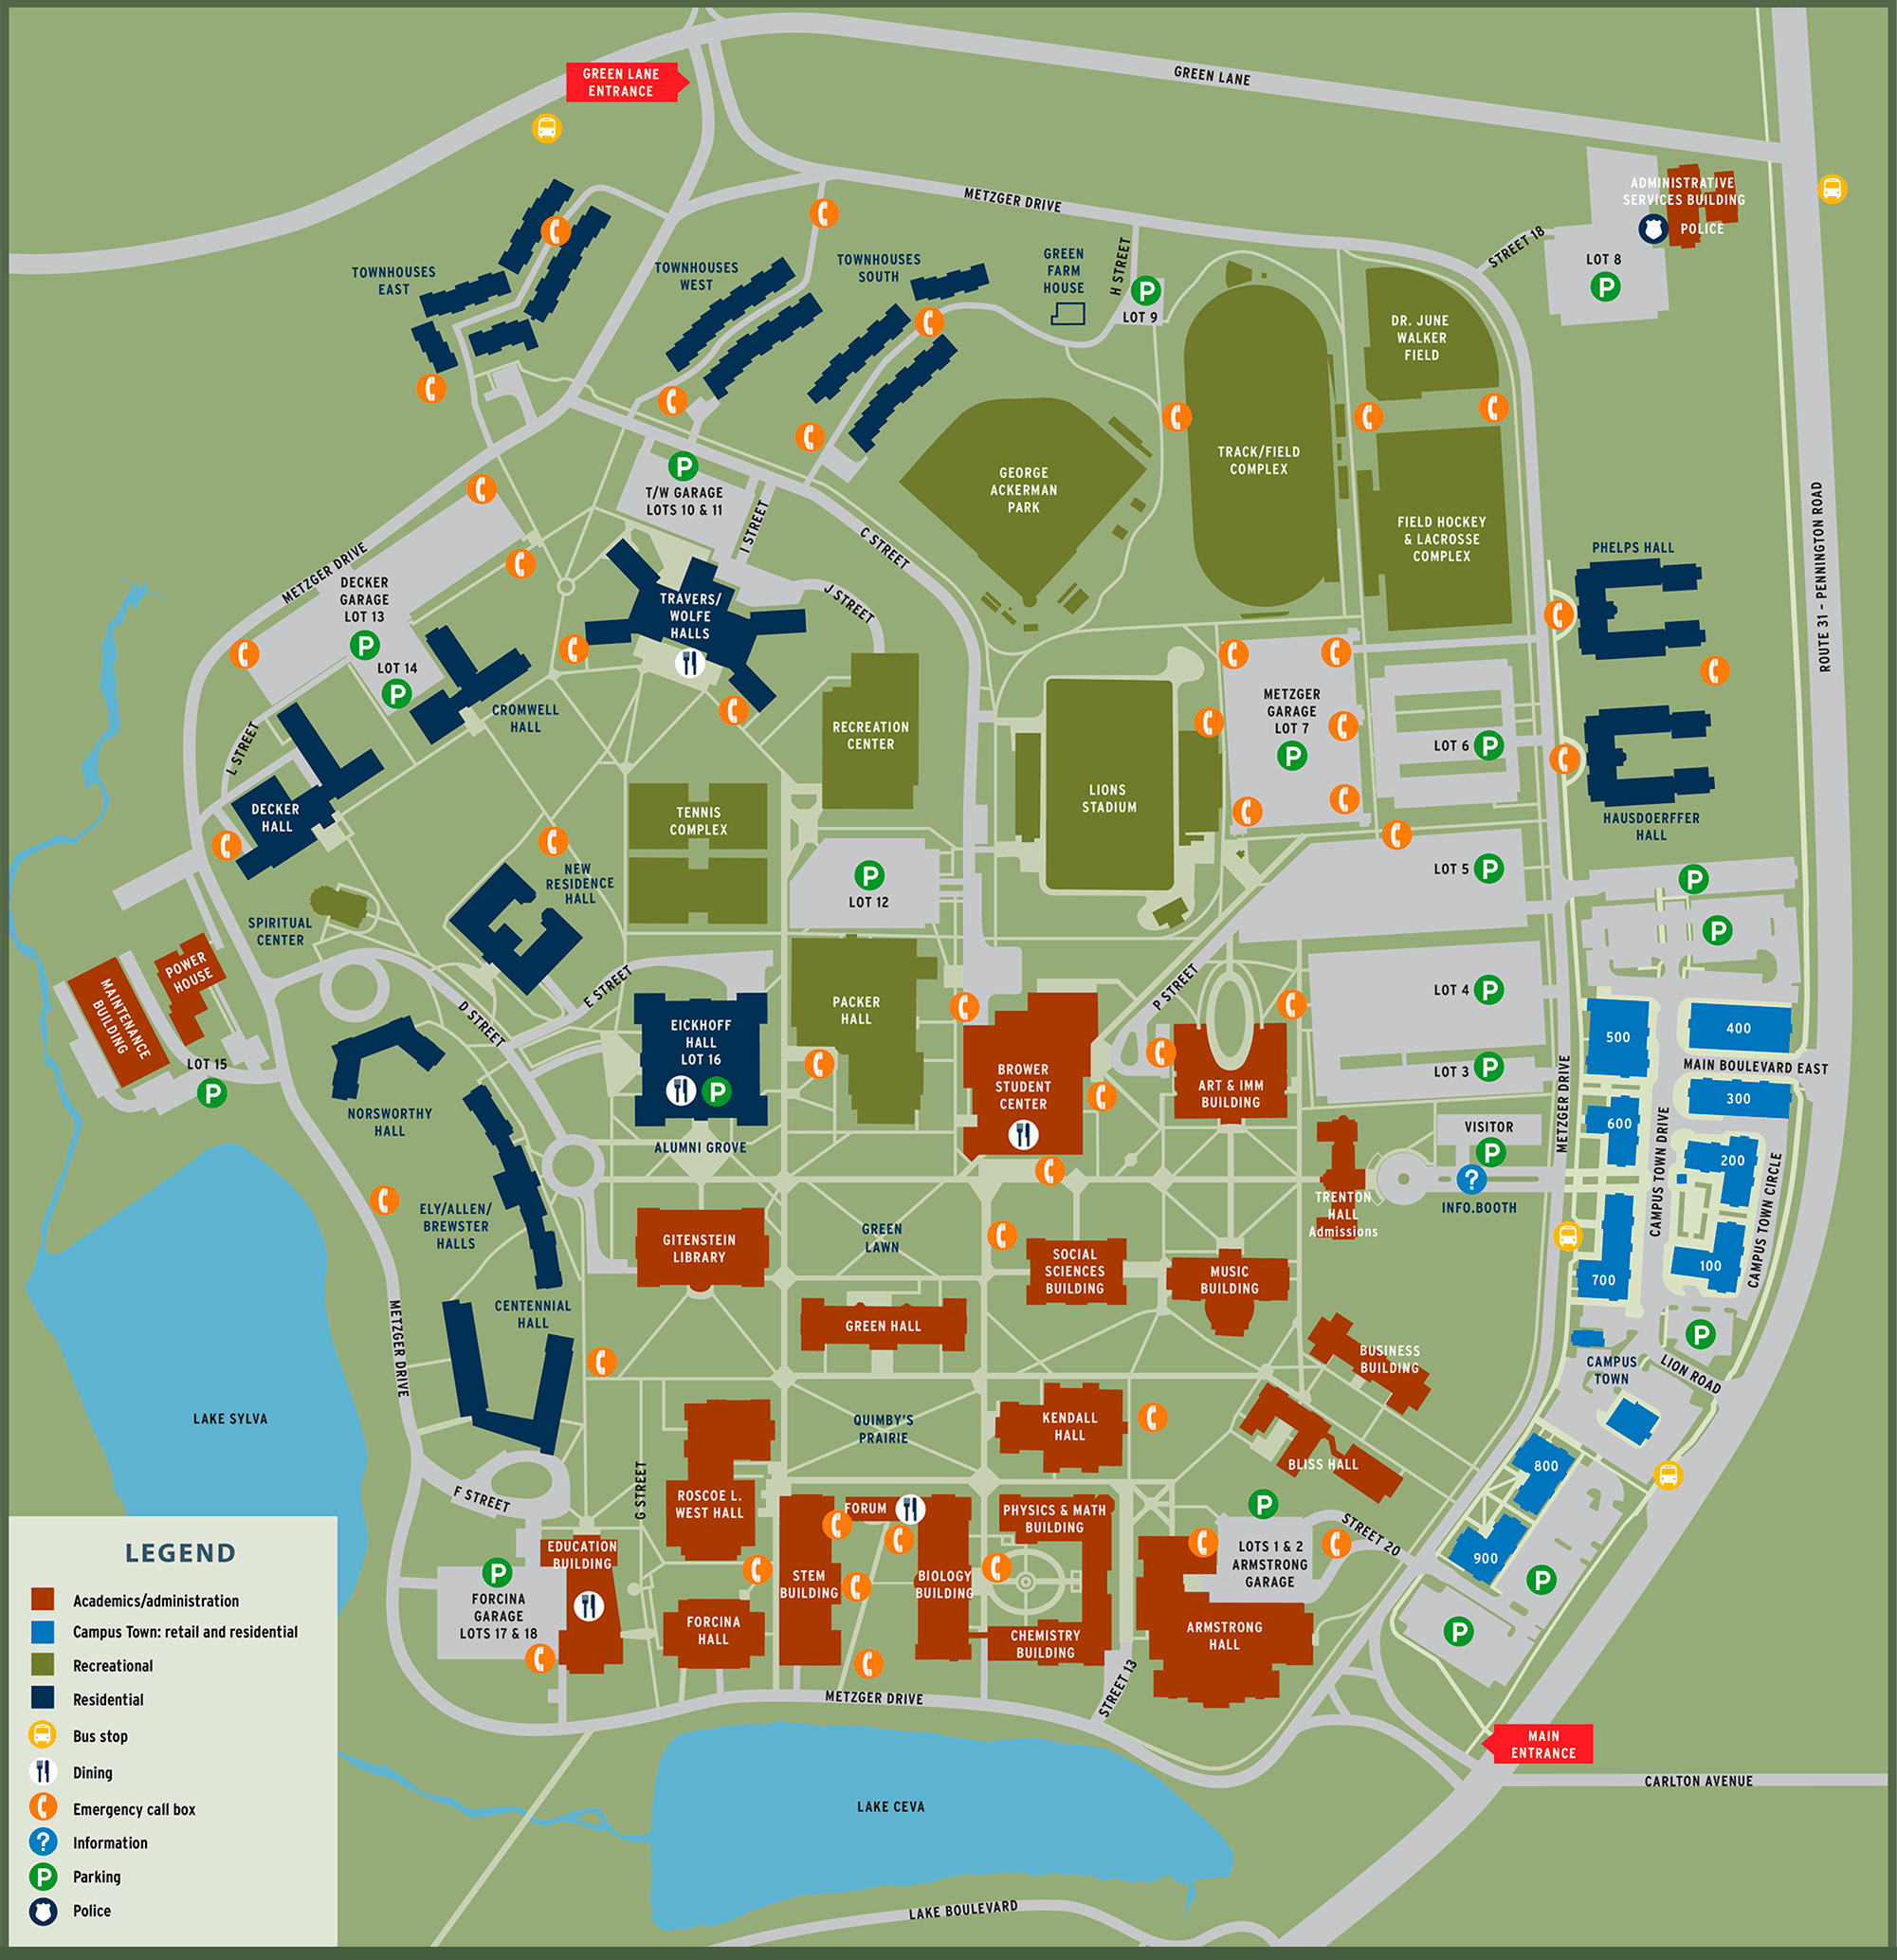 College Of New Jersey Campus Map.Campus Map The College Of New Jersey